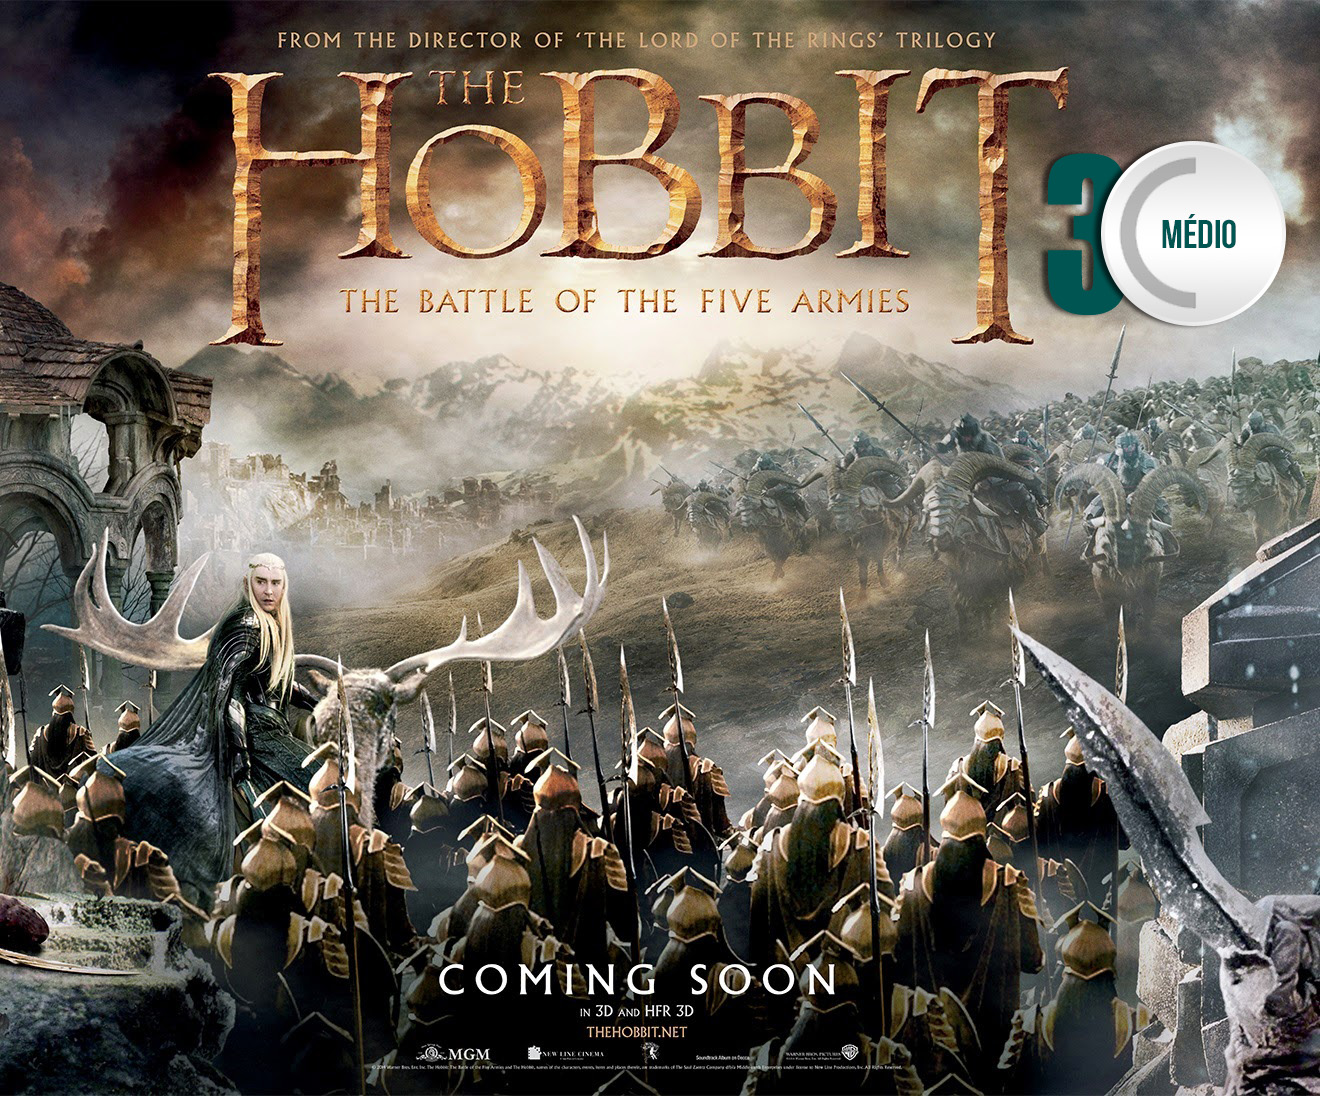 b58a1-movies-the-hobbit-the-battle-of-the-five-armies-tapestry-artwork2b-2bcopia2b6